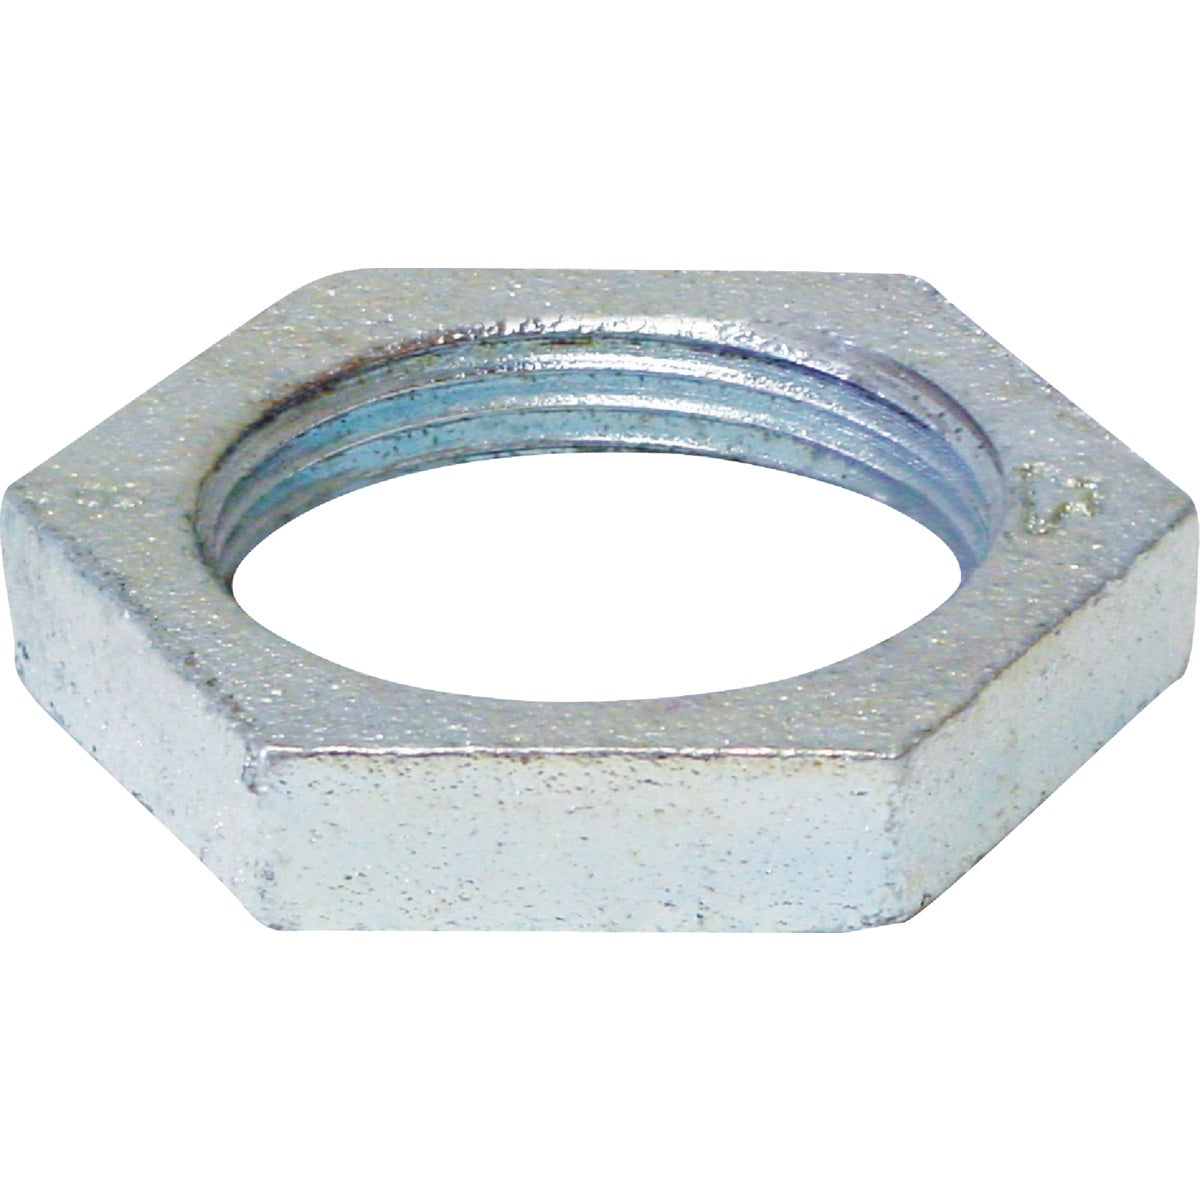 "1-1/2"" GALV LOCKNUT - 8700162707 by Anvil International"